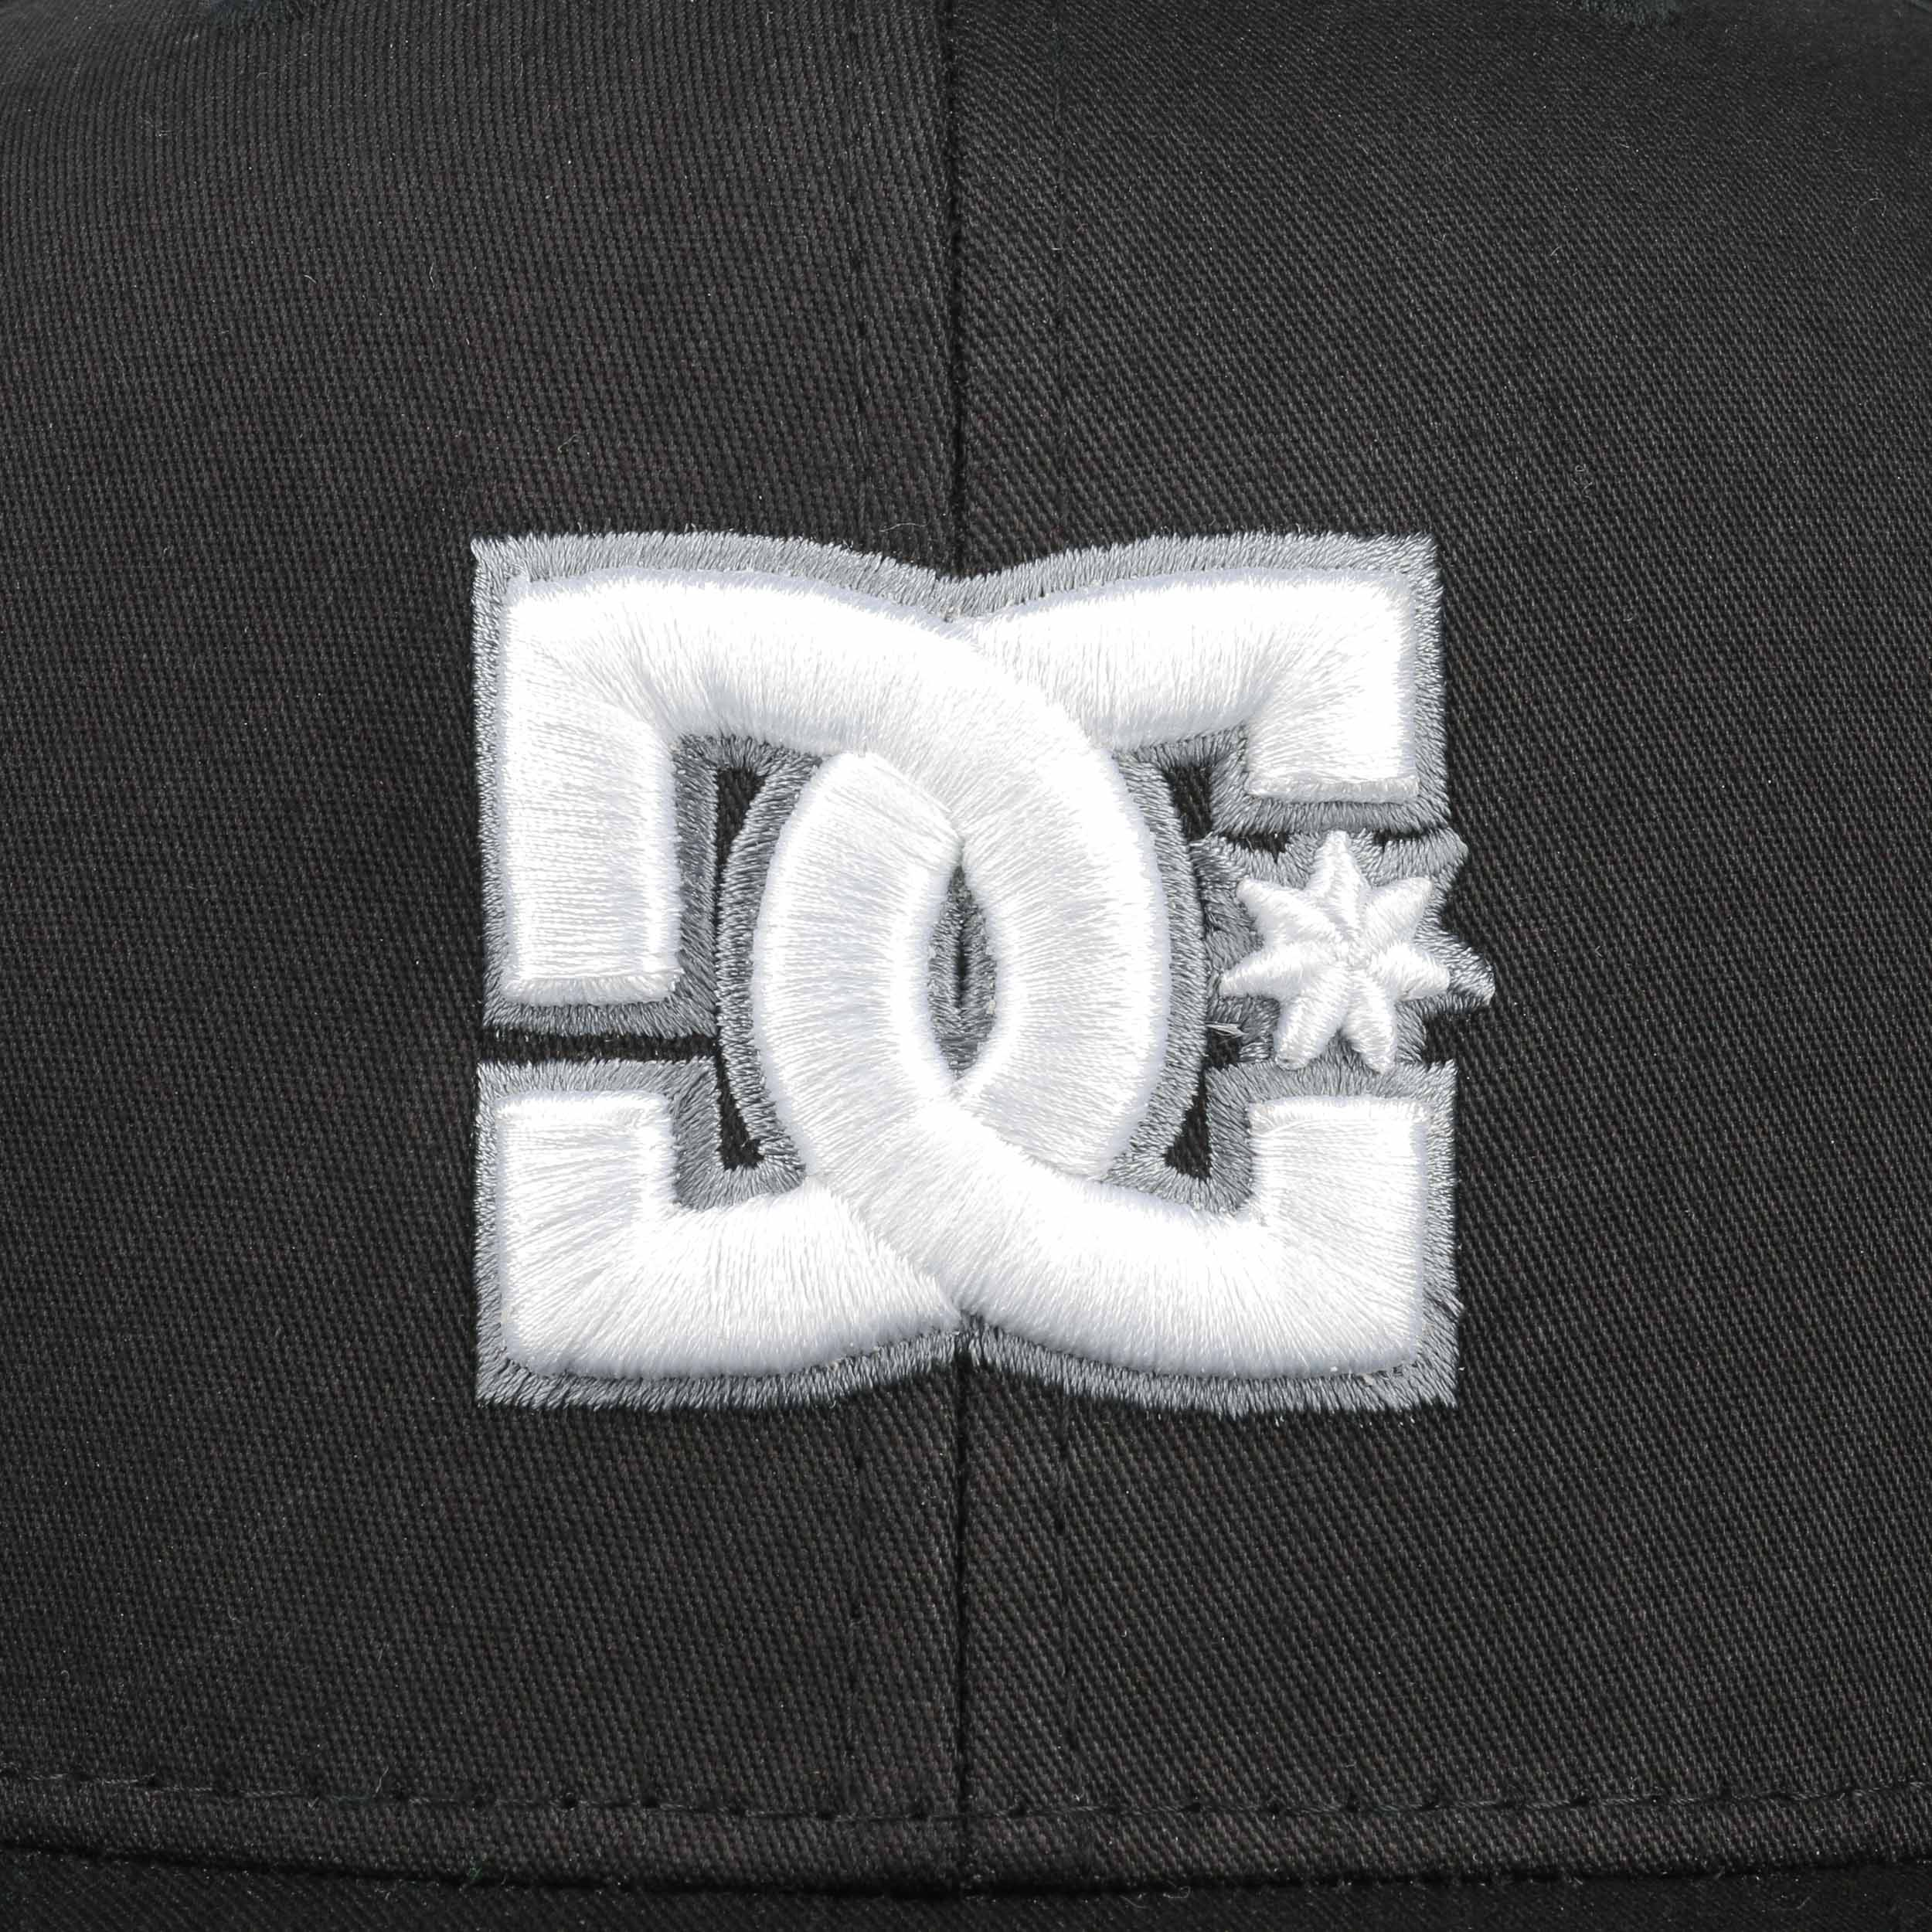 ... Snappy Snapback Cap by DC Shoes Co - black 4 ... 0988de2cb5e